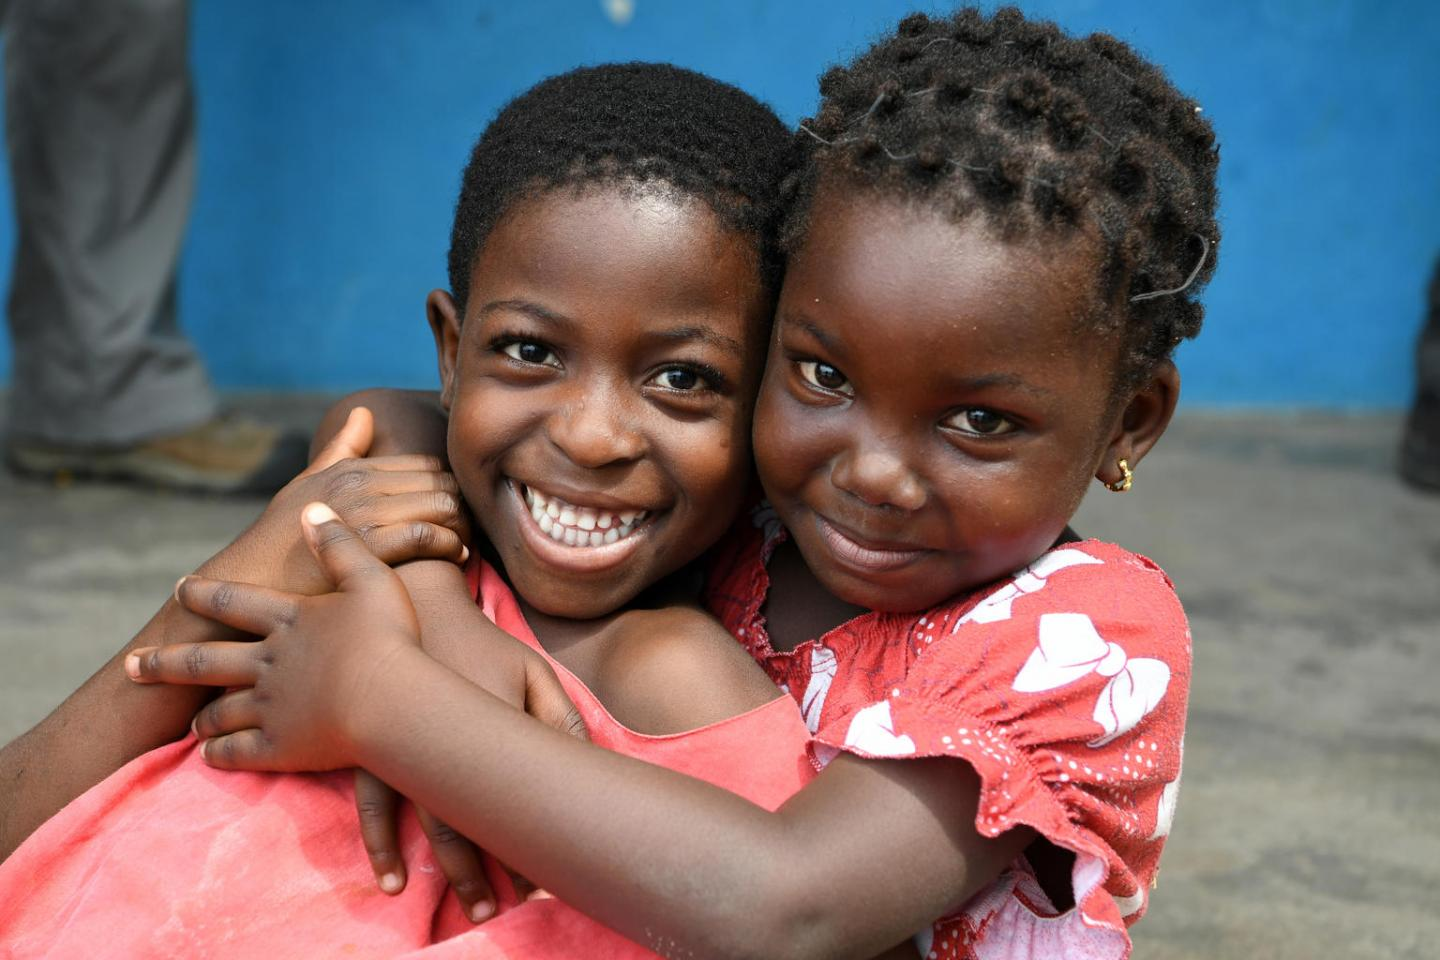 Girls in Abidjan, Côte d'Ivoire, embrace each other with smiles.